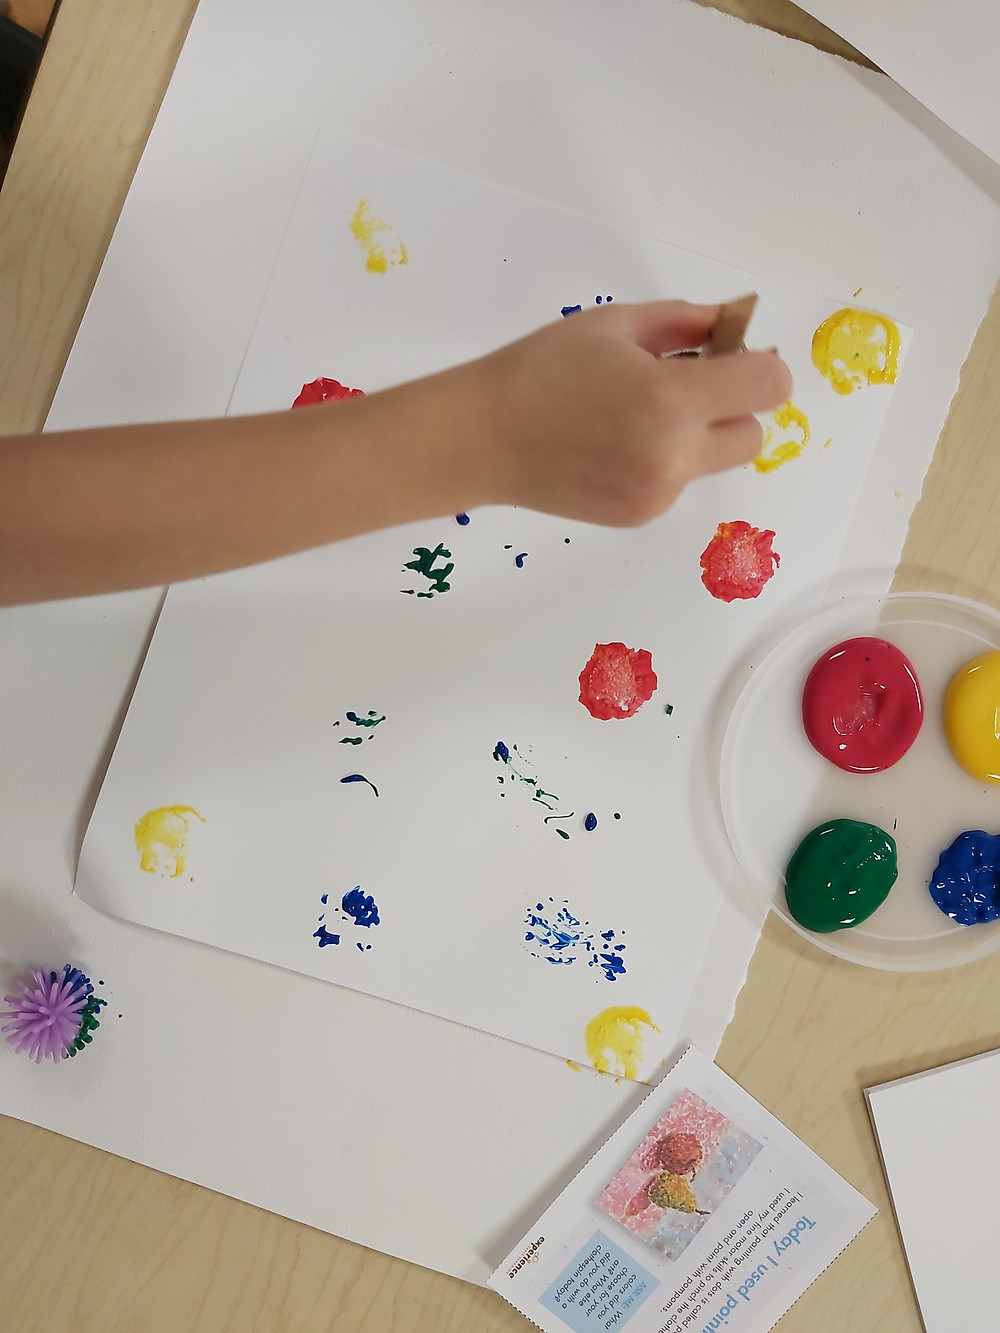 preschooler using clothespin with pom-pom to paint